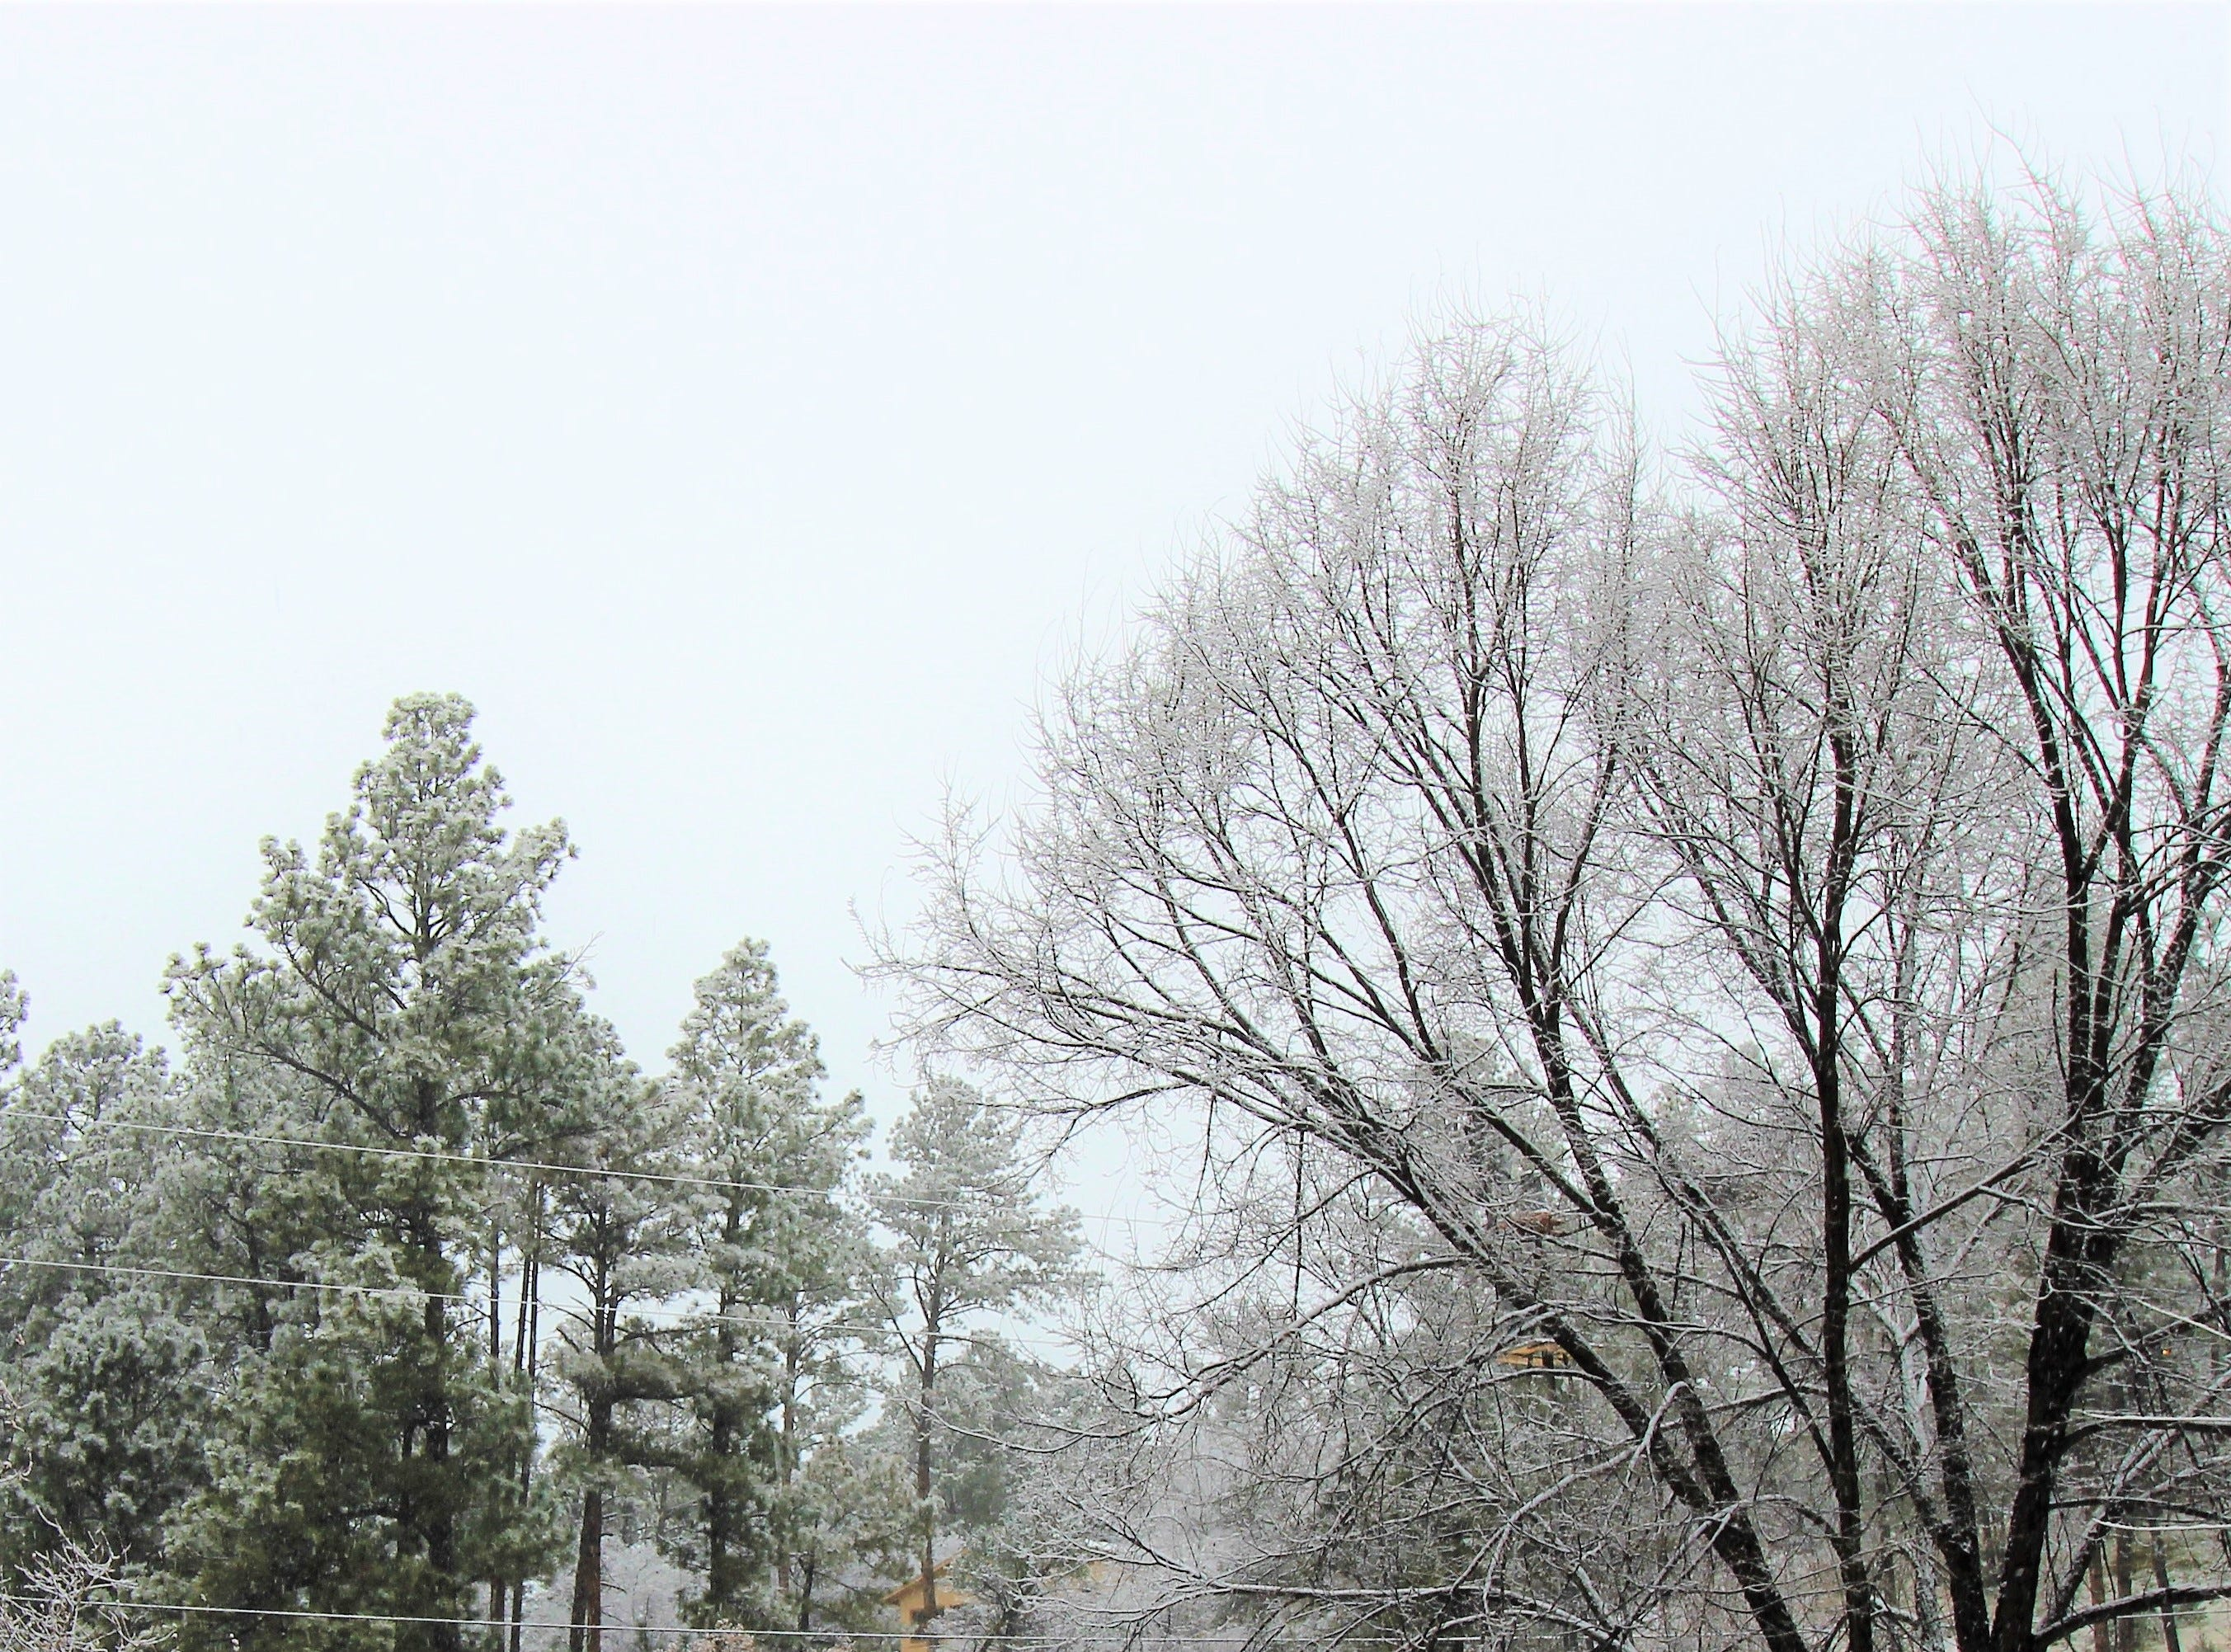 An old-fashion winter wonderland took shape as the snowfall early wed. morning delivered a fresh white blanket to the Village.